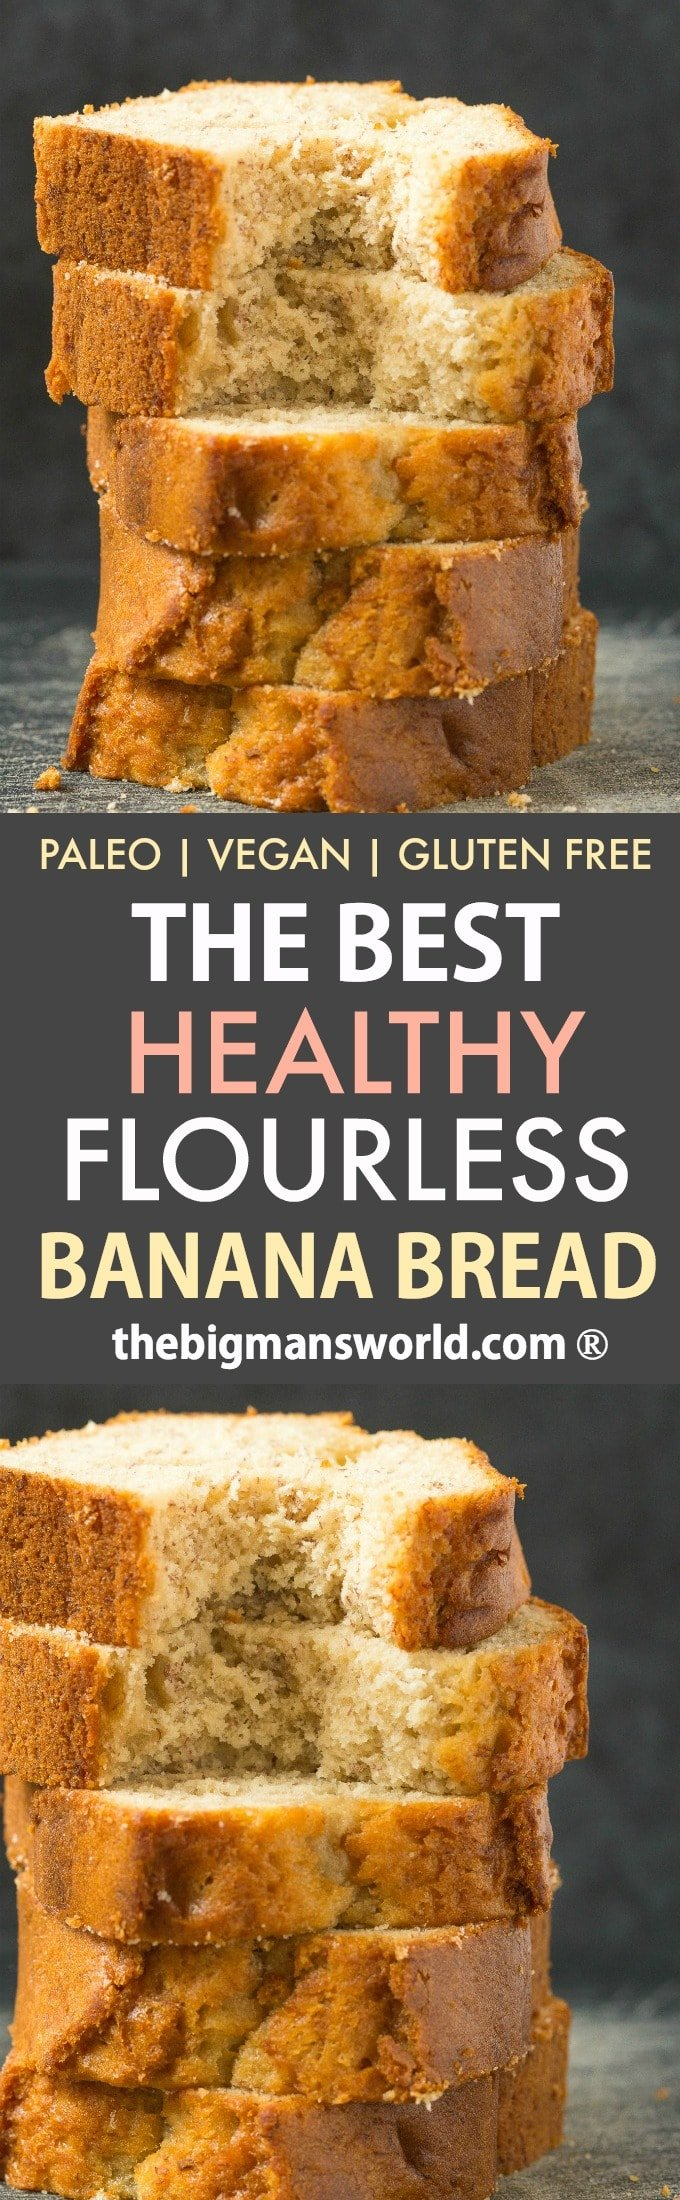 The BEST Healthy Flourless Banana Bread made with almond flour- No eggs, no flour and no oats, it's perfect for breakfast or a snack- Tender on the outside, moist on the inside! Paleo, Vegan and Gluten-Free #bananabread #flourless #breakfast #paleo #vegan #glutenfree #grainfree #bananacake